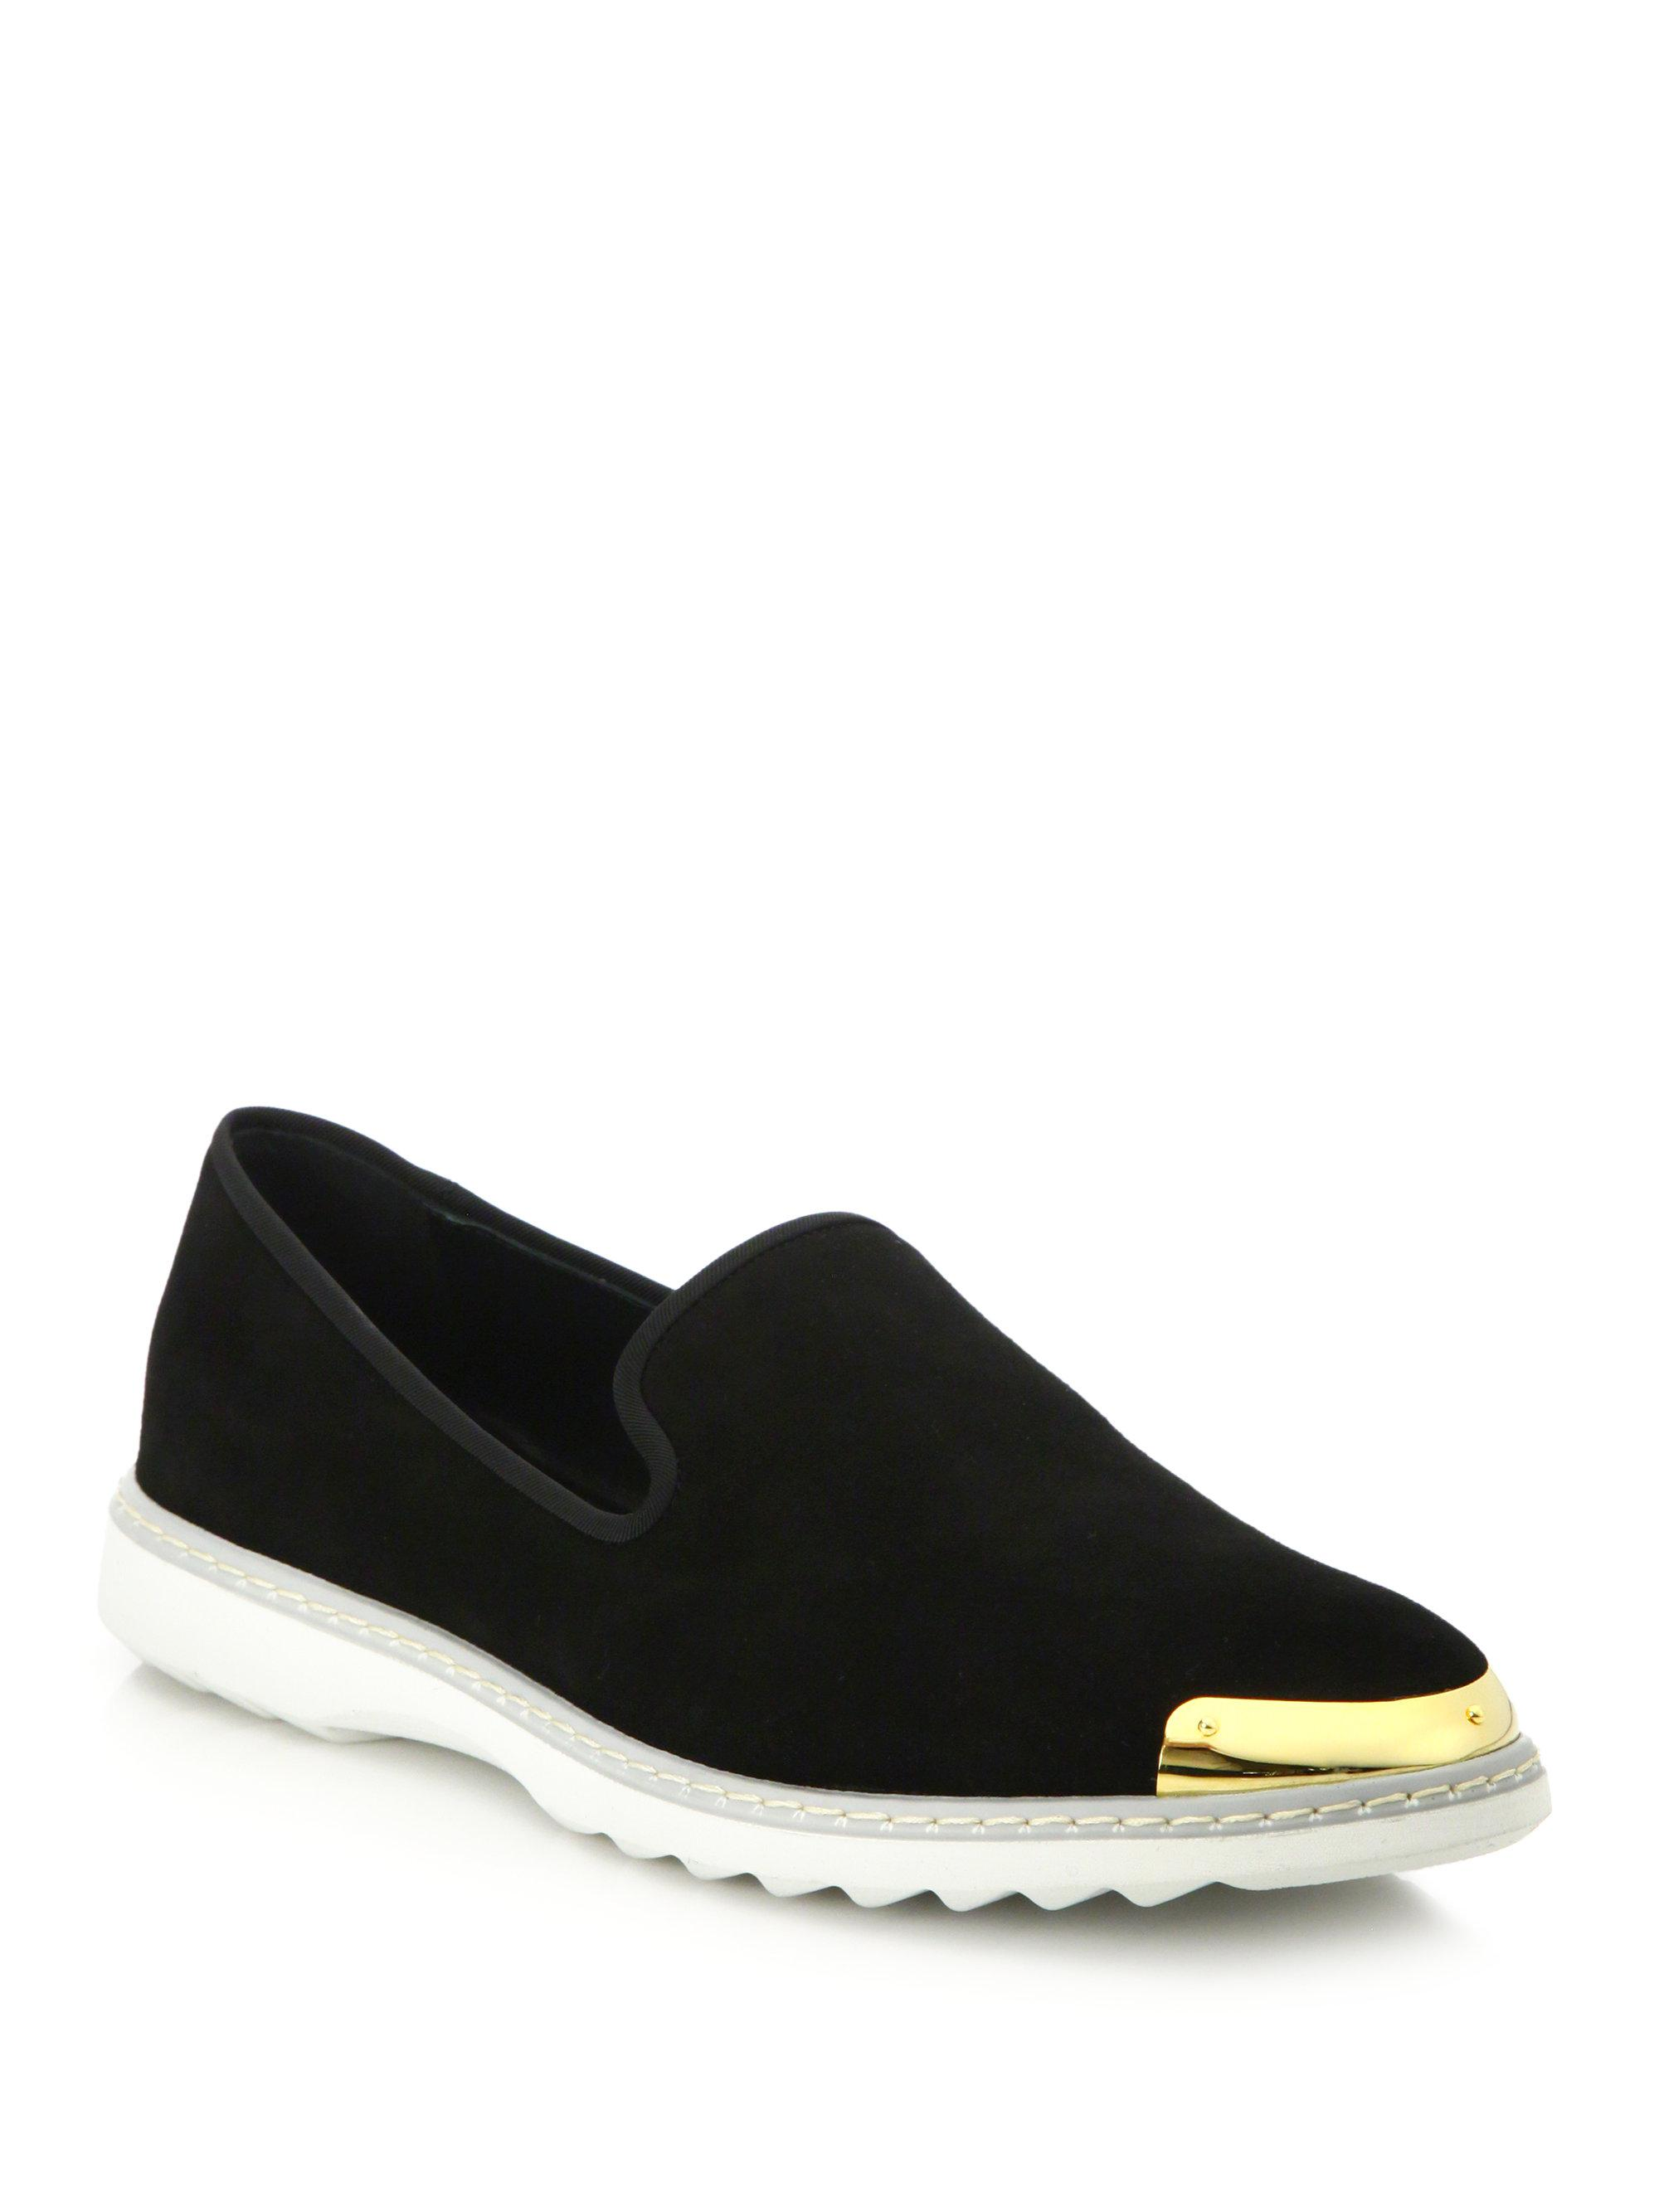 Giuseppe ZanottiSuede Slip-On Sneakers DETHEDV